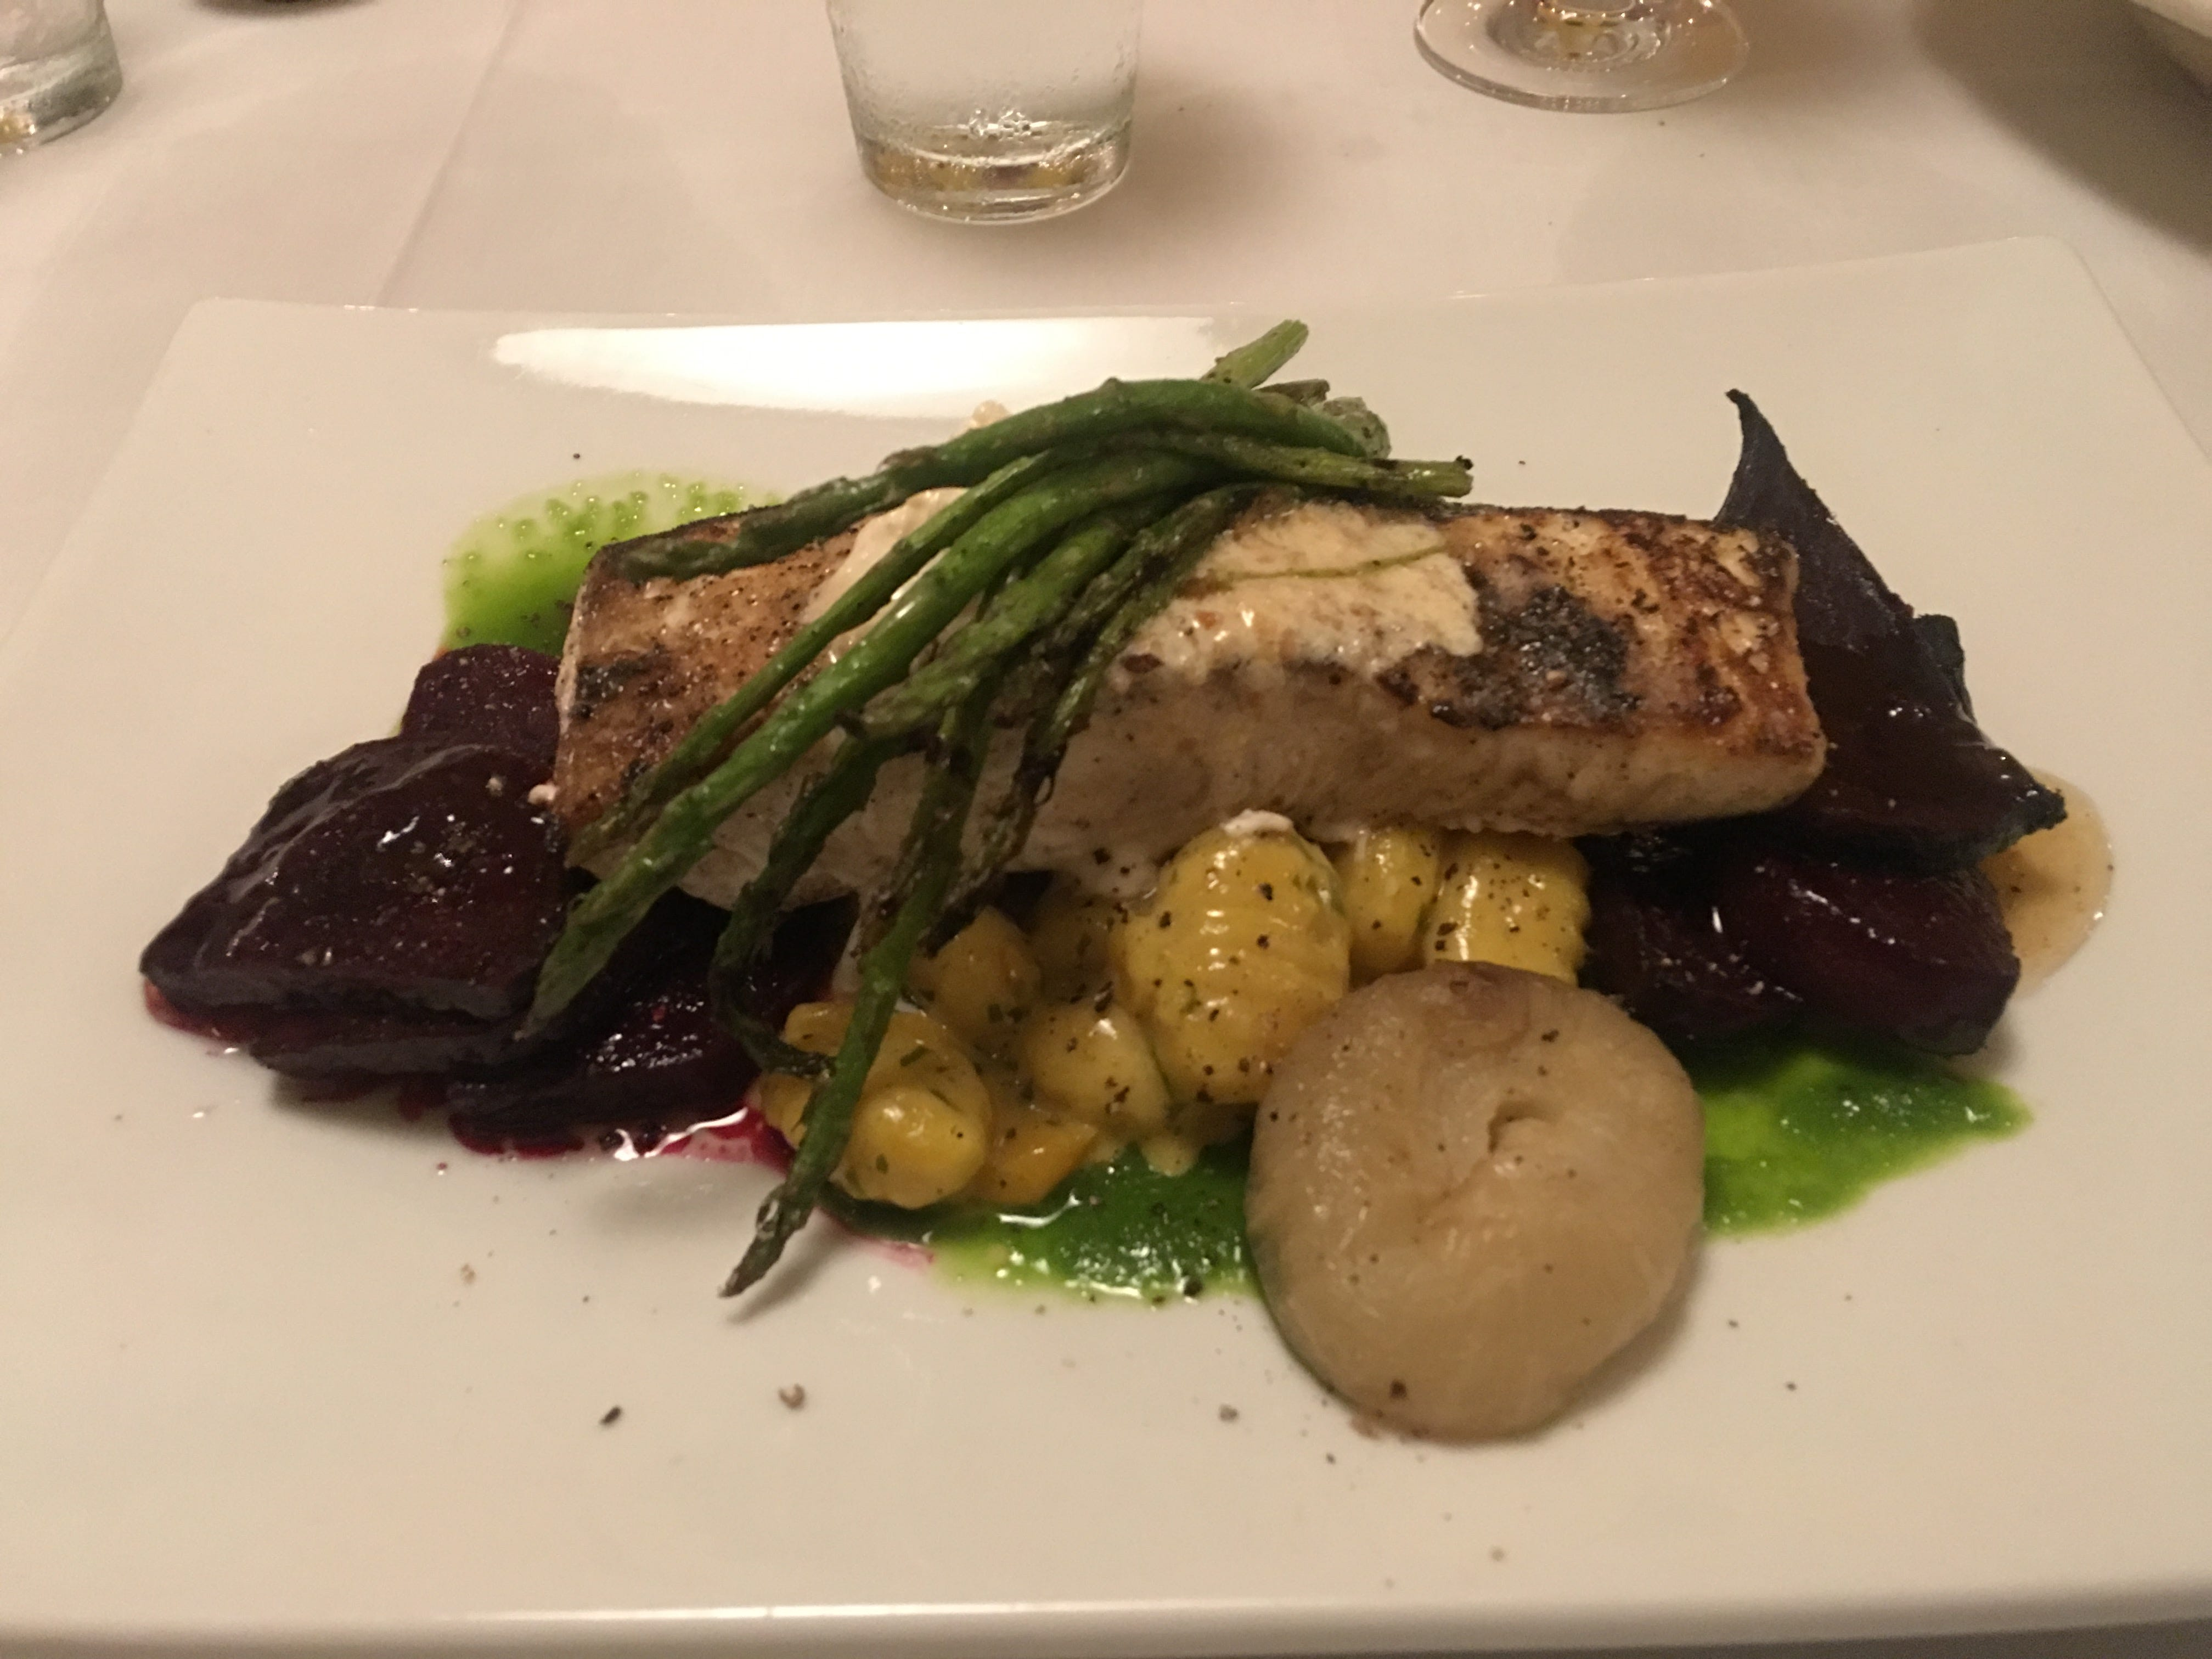 Pan-seared Norwegian halibut topped with toasted almond compound butter, honey roasted beets, grilled asparagus, and Cipollini onions was the Fire and Wine special seafood dish of the night.